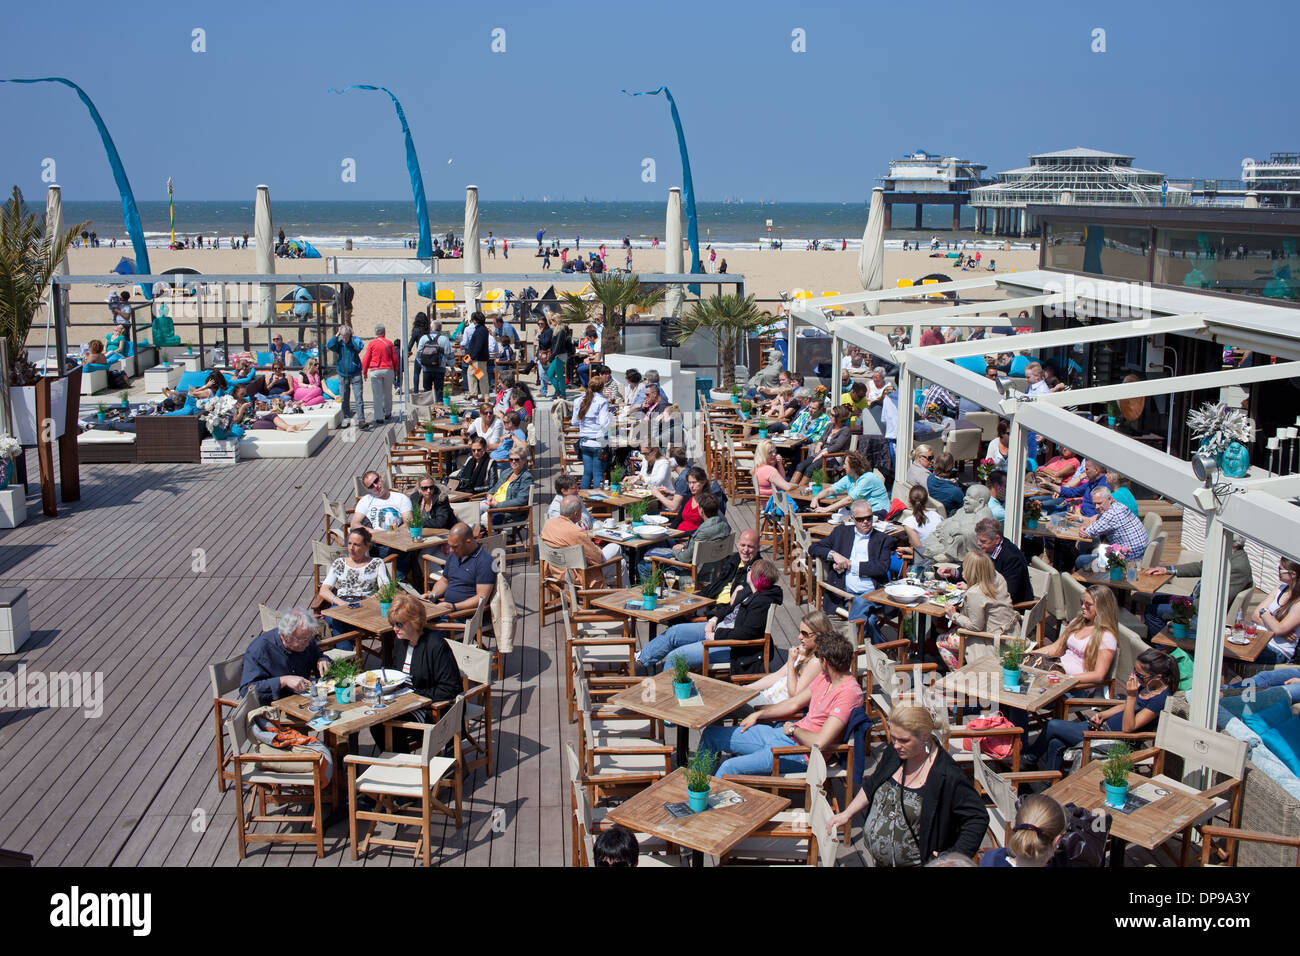 Scheveningen Beach Restaurants Beach Club Café Restaurant In Scheveningen Gegend An Der Nordsee